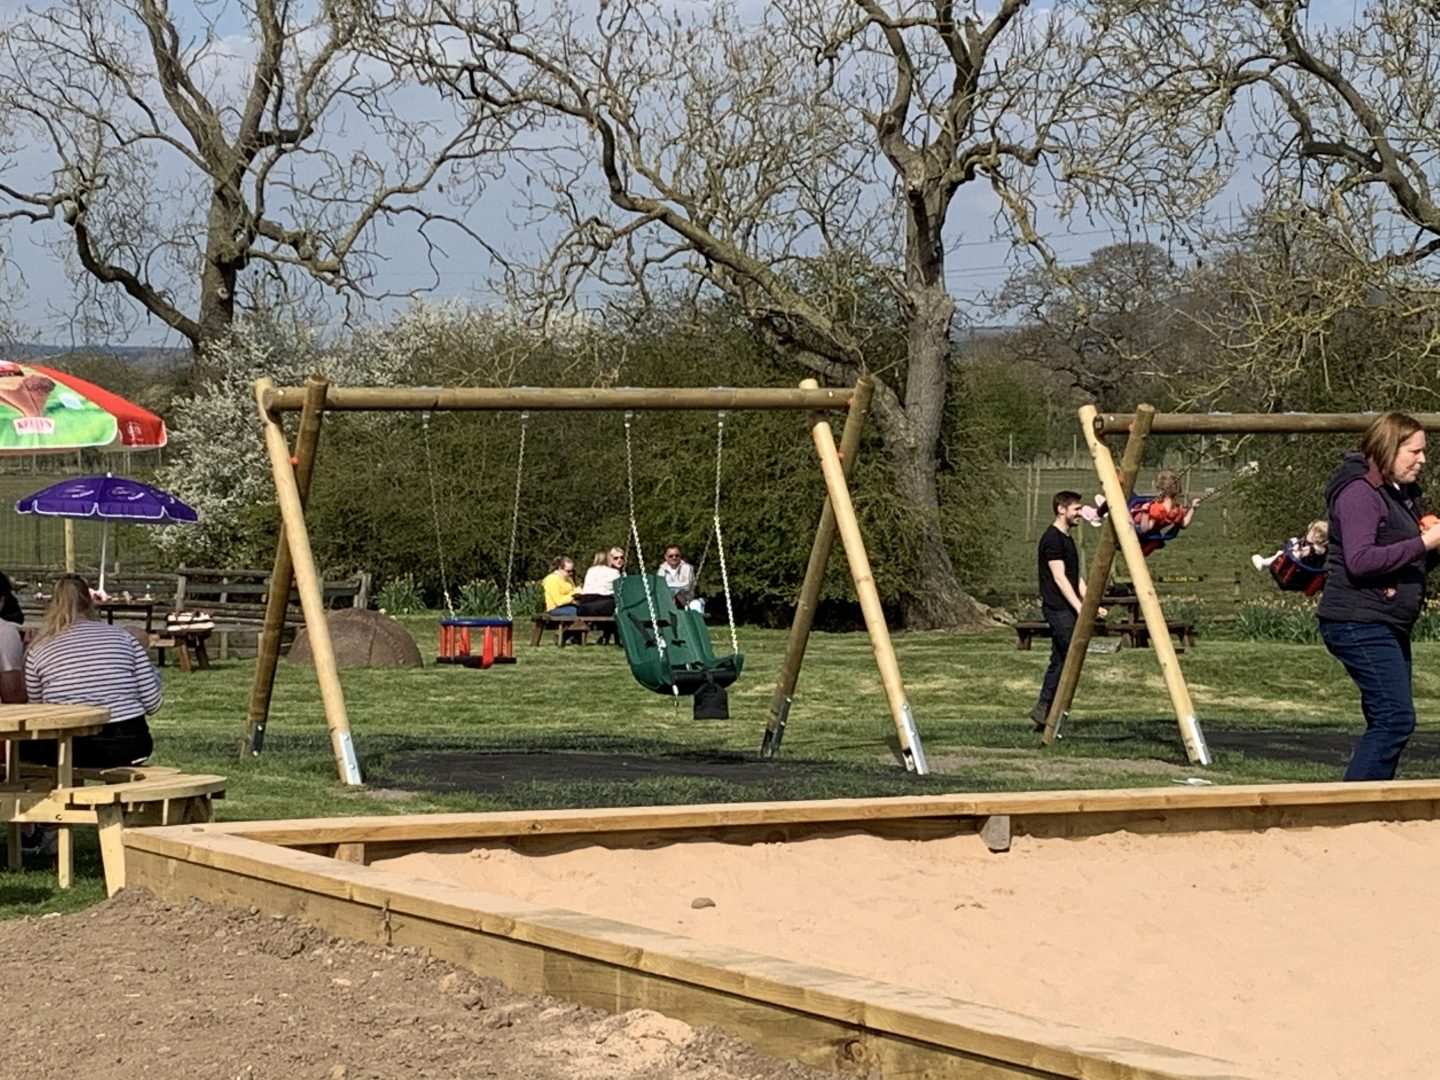 The swings, including a large bucket seat swing with straps at Monk Park Farm